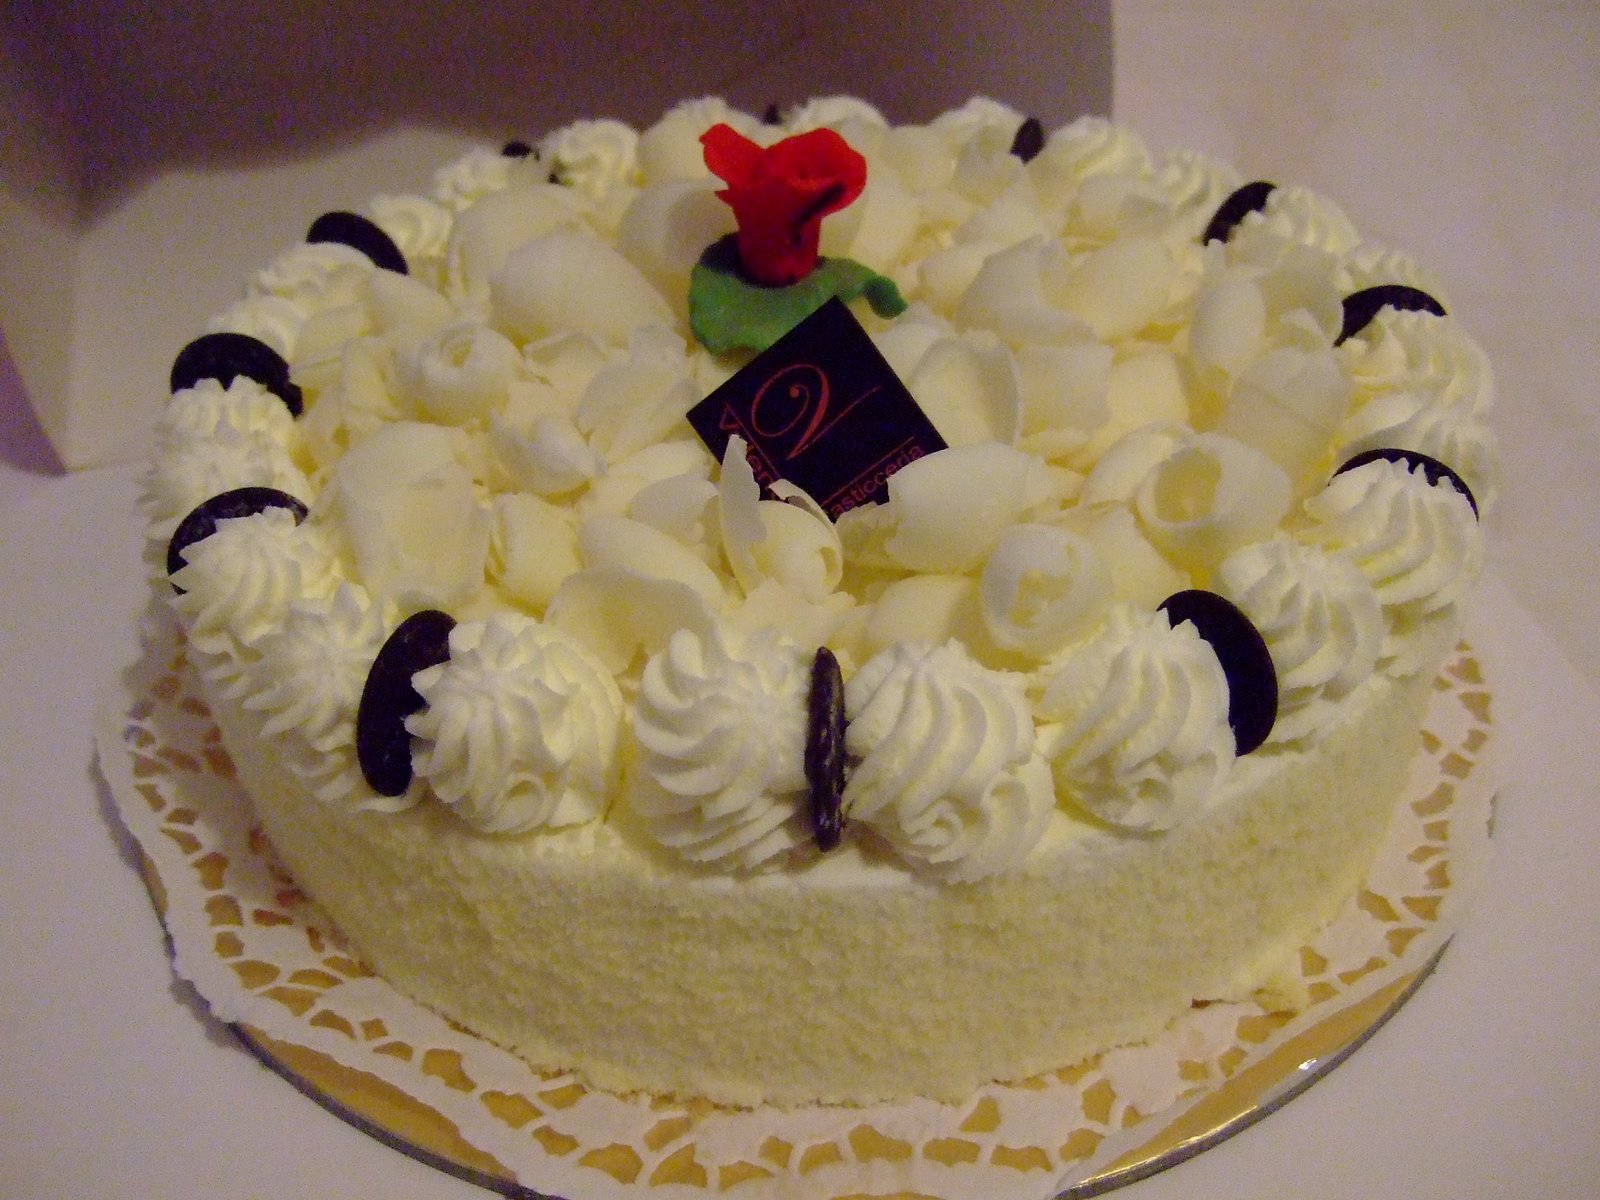 Cake Decoration With White Chocolate : Wedding Cakes: White Chocolate Cake Recipe White Chocolate Cake Pictures